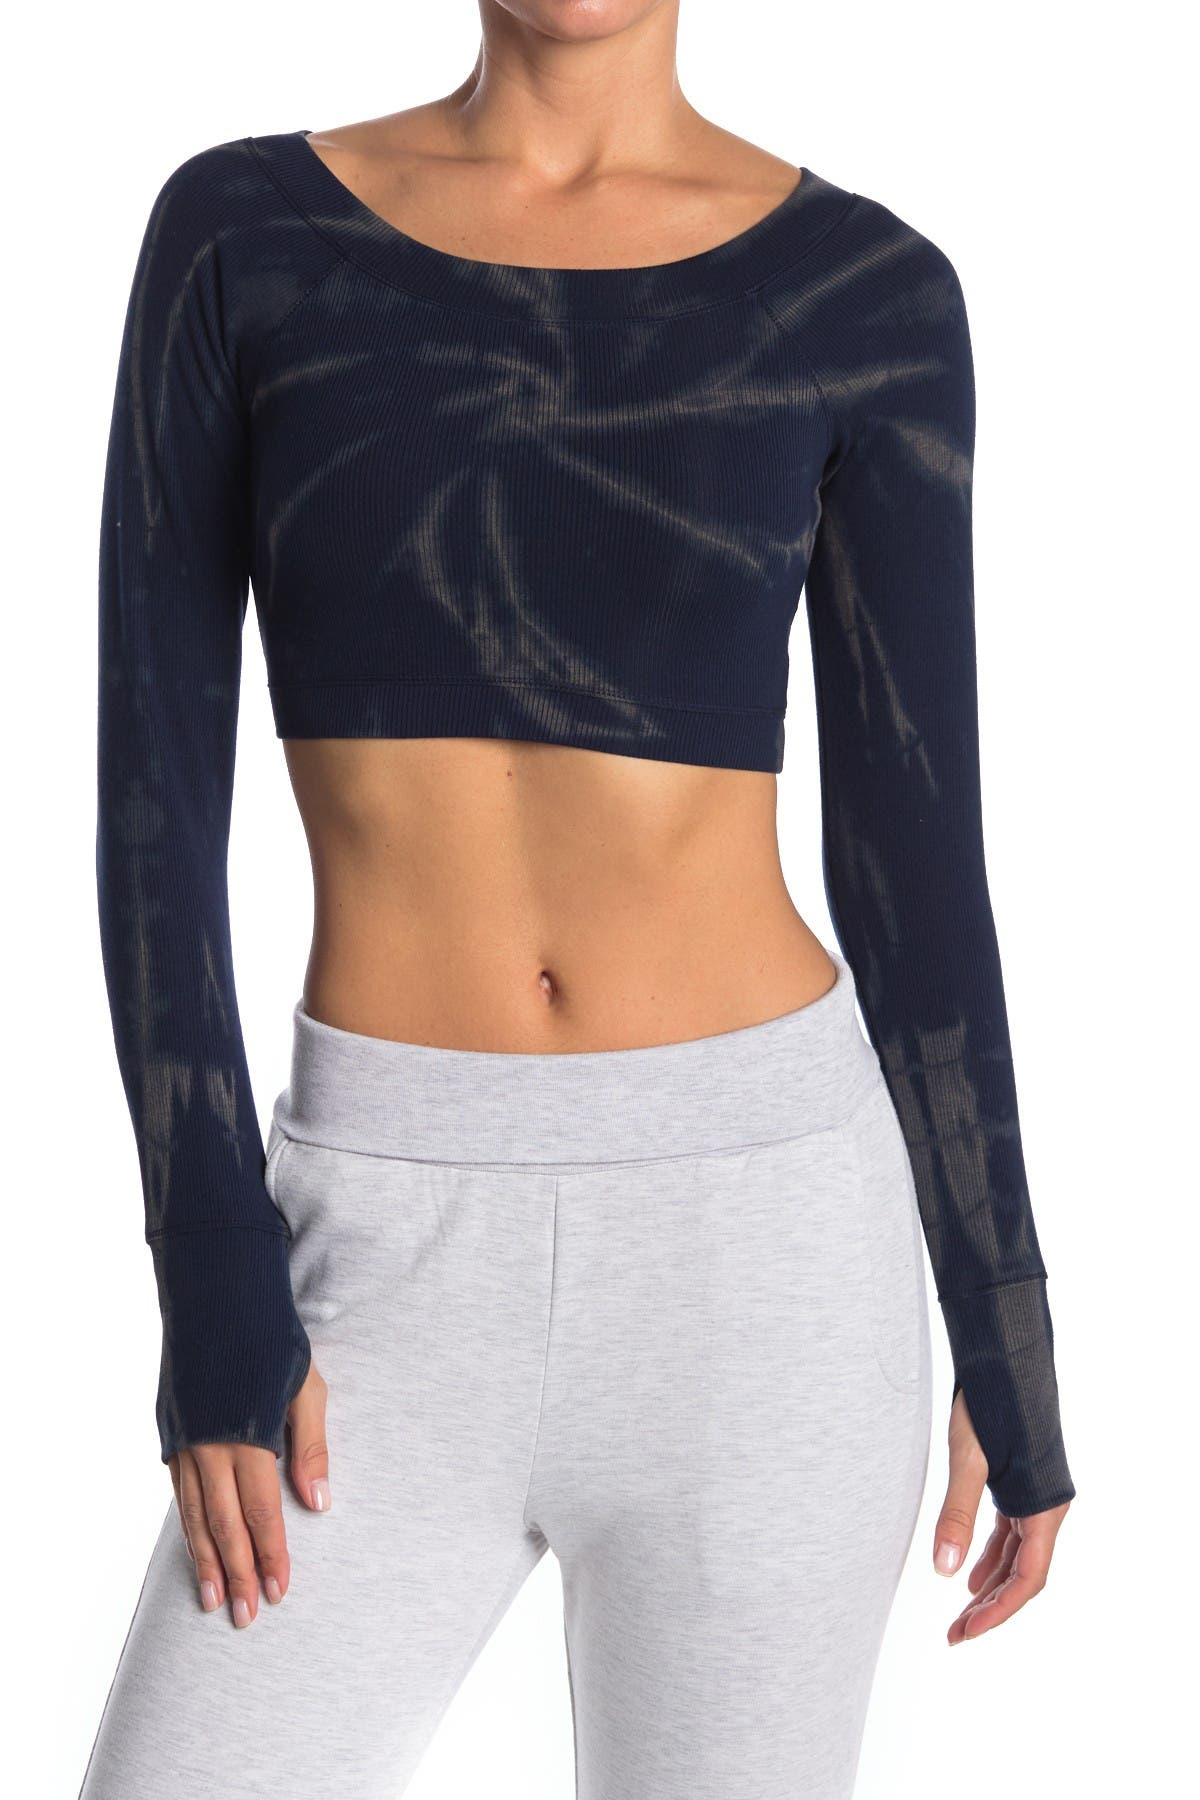 Image of ARX LAB Tie Dye Ribbed Knit Crop Top